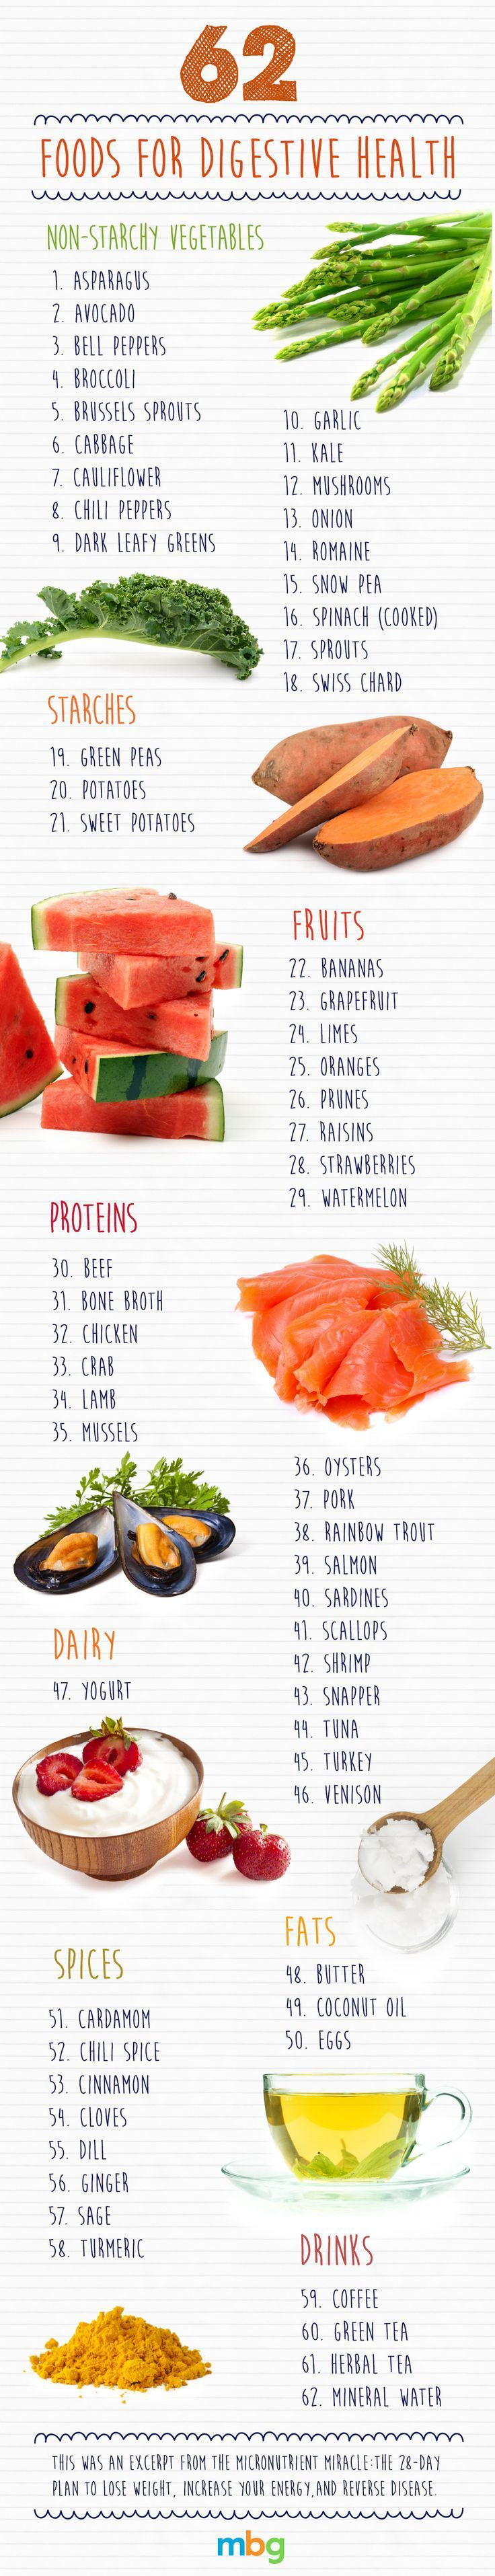 Healthy Food Ideas To Lose Weight: http://www.theeasierlife.com/food-drink/